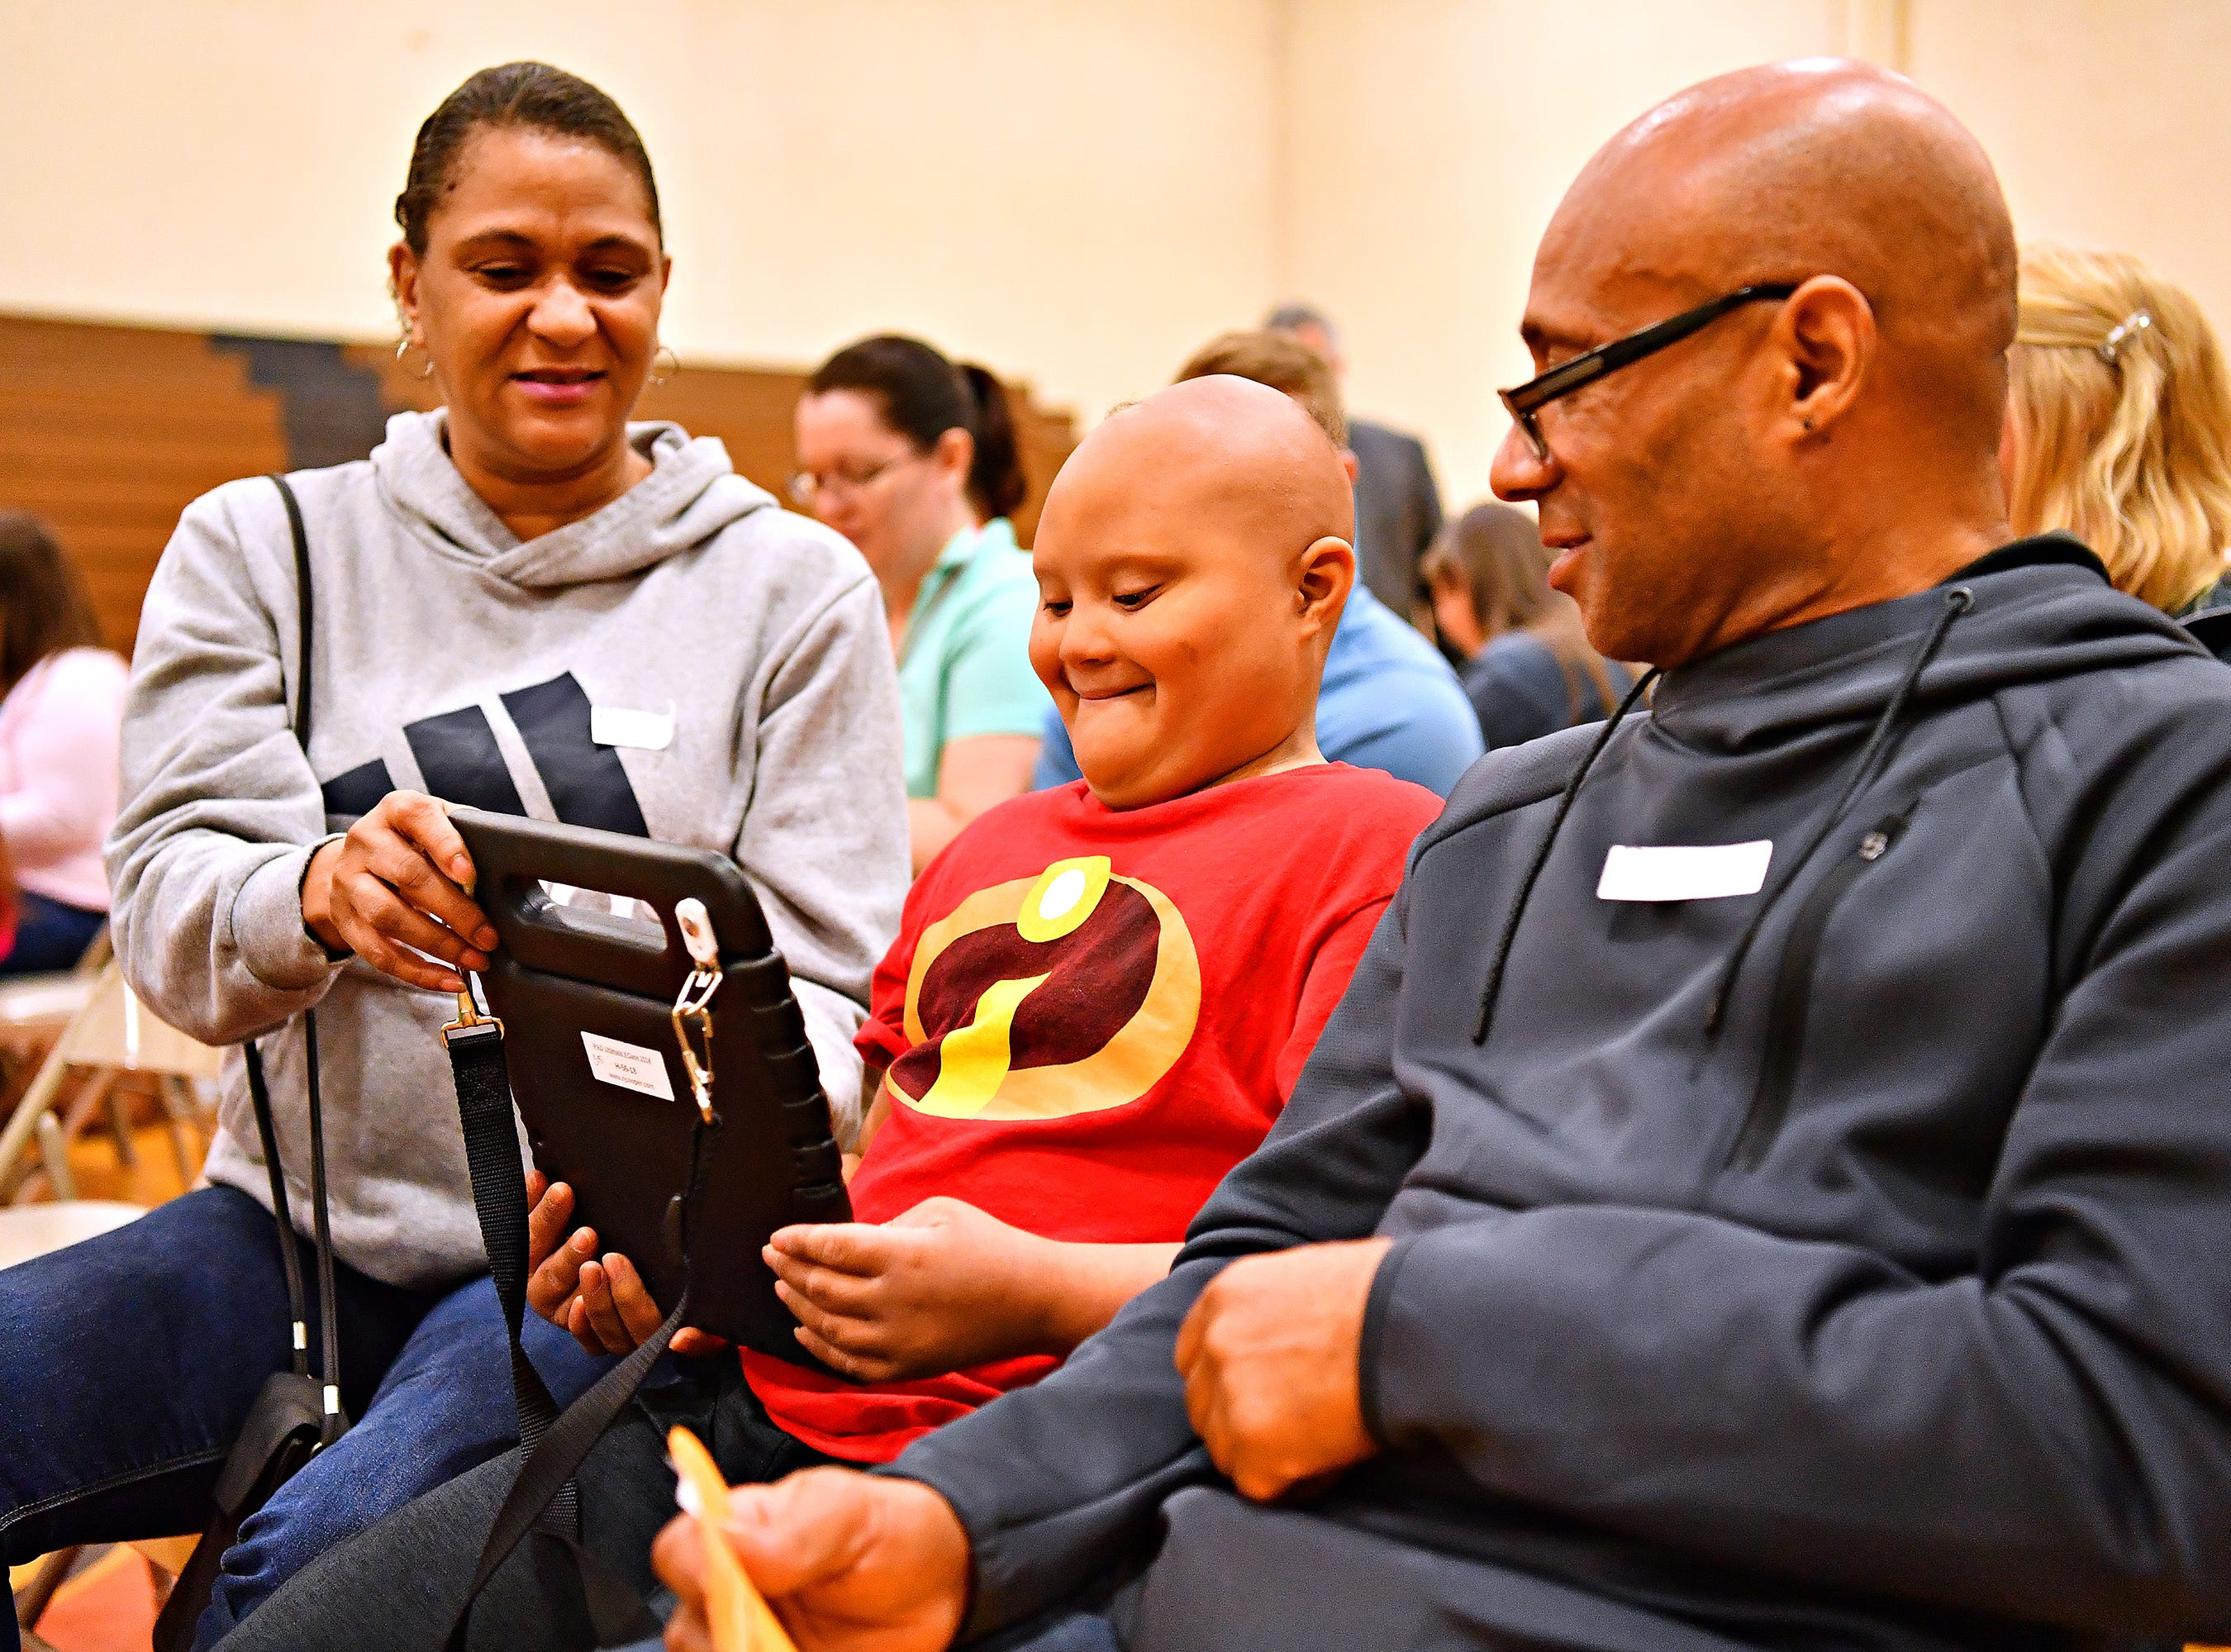 Shontae Stewart, left, and Charles Stewart, right, look on as their son Samuel Stewart, 10, checks out the camera feature on his new communication device from Variety, the Children's Charity, an organization based in Pittsburg that provides adaptable equipment and communication devices to children with disabilities, at York Learning Center in North York, Tuesday, May 14, 2019. Upon receiving the device, Samuel, who was born with Down syndrome, used the device to tell his parents he wanted a dvd and to go home. Dawn J. Sagert photo